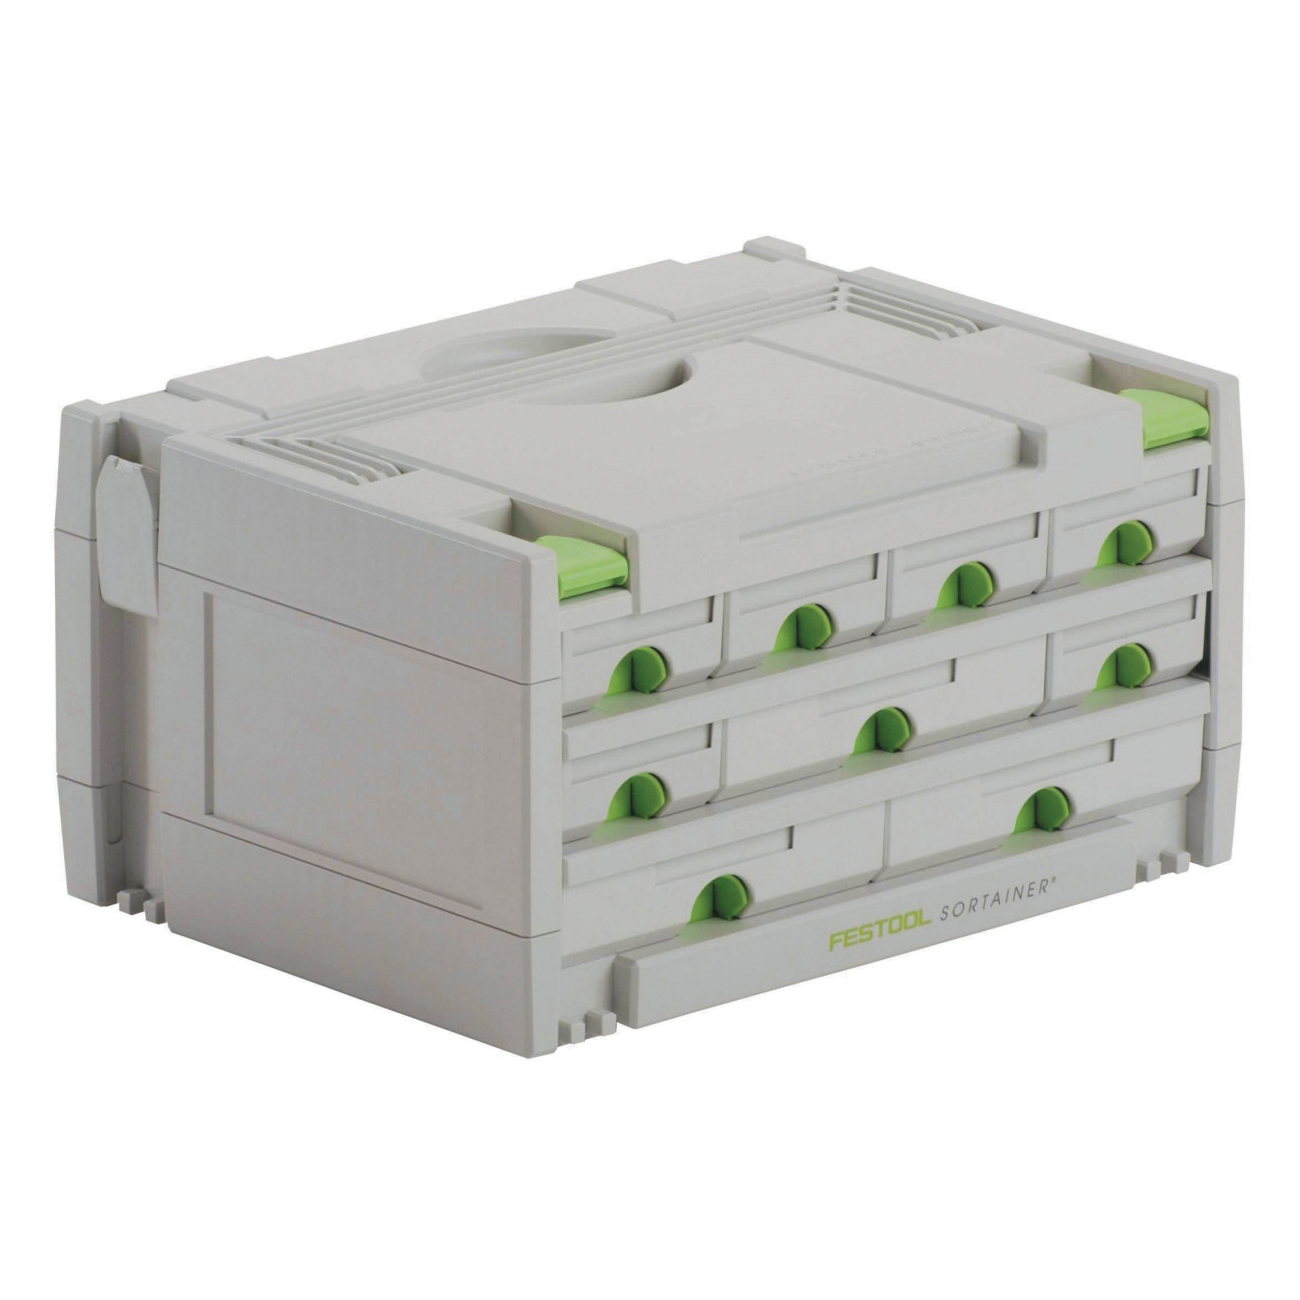 Picture of Festool 491985 Sortainer, 9-Drawer, ABS Drawer, 395 mm OAL, 295 mm OAW, 210 mm OAD